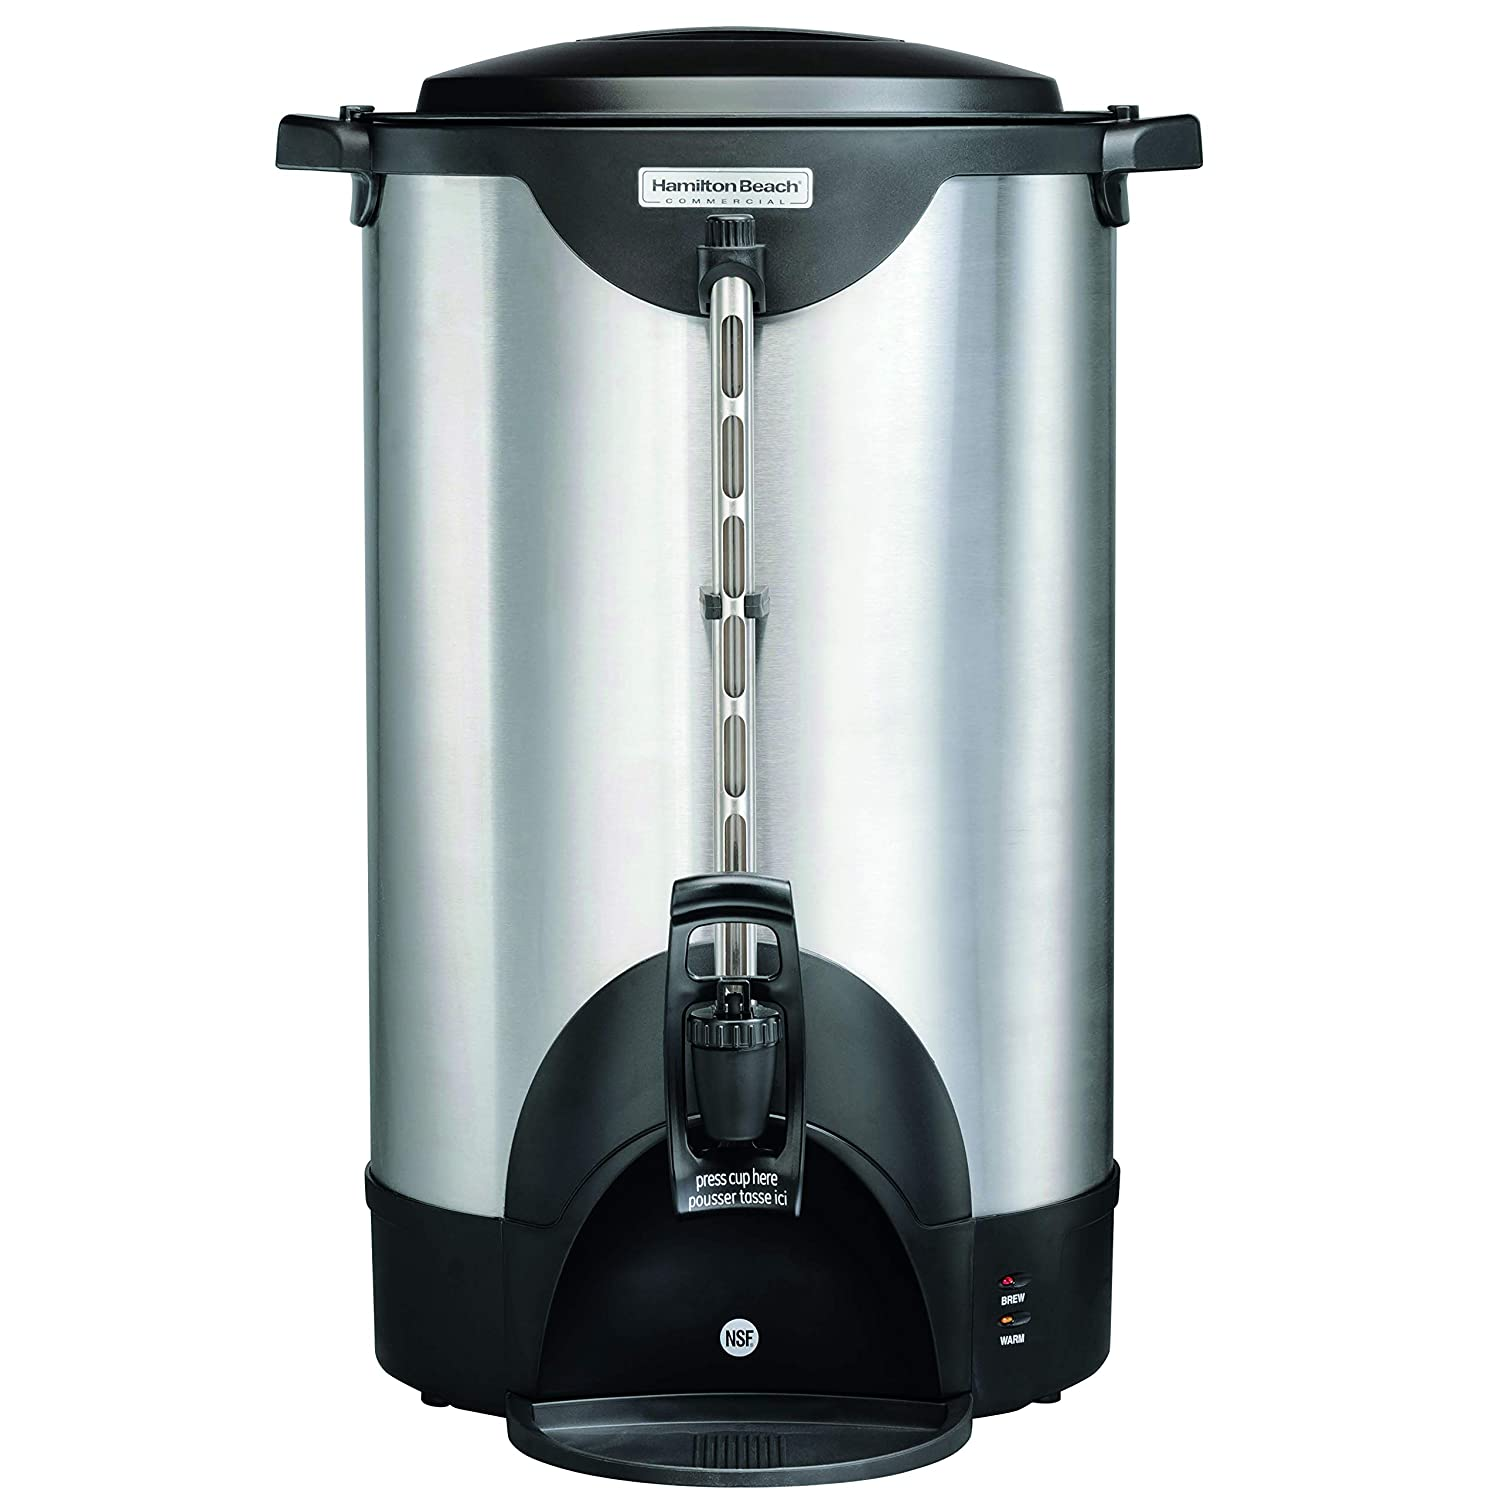 Hamilton Beach Commercial 100 Cup Stainless Steel Coffee Urn (HCU100S), Double Wall, 120V